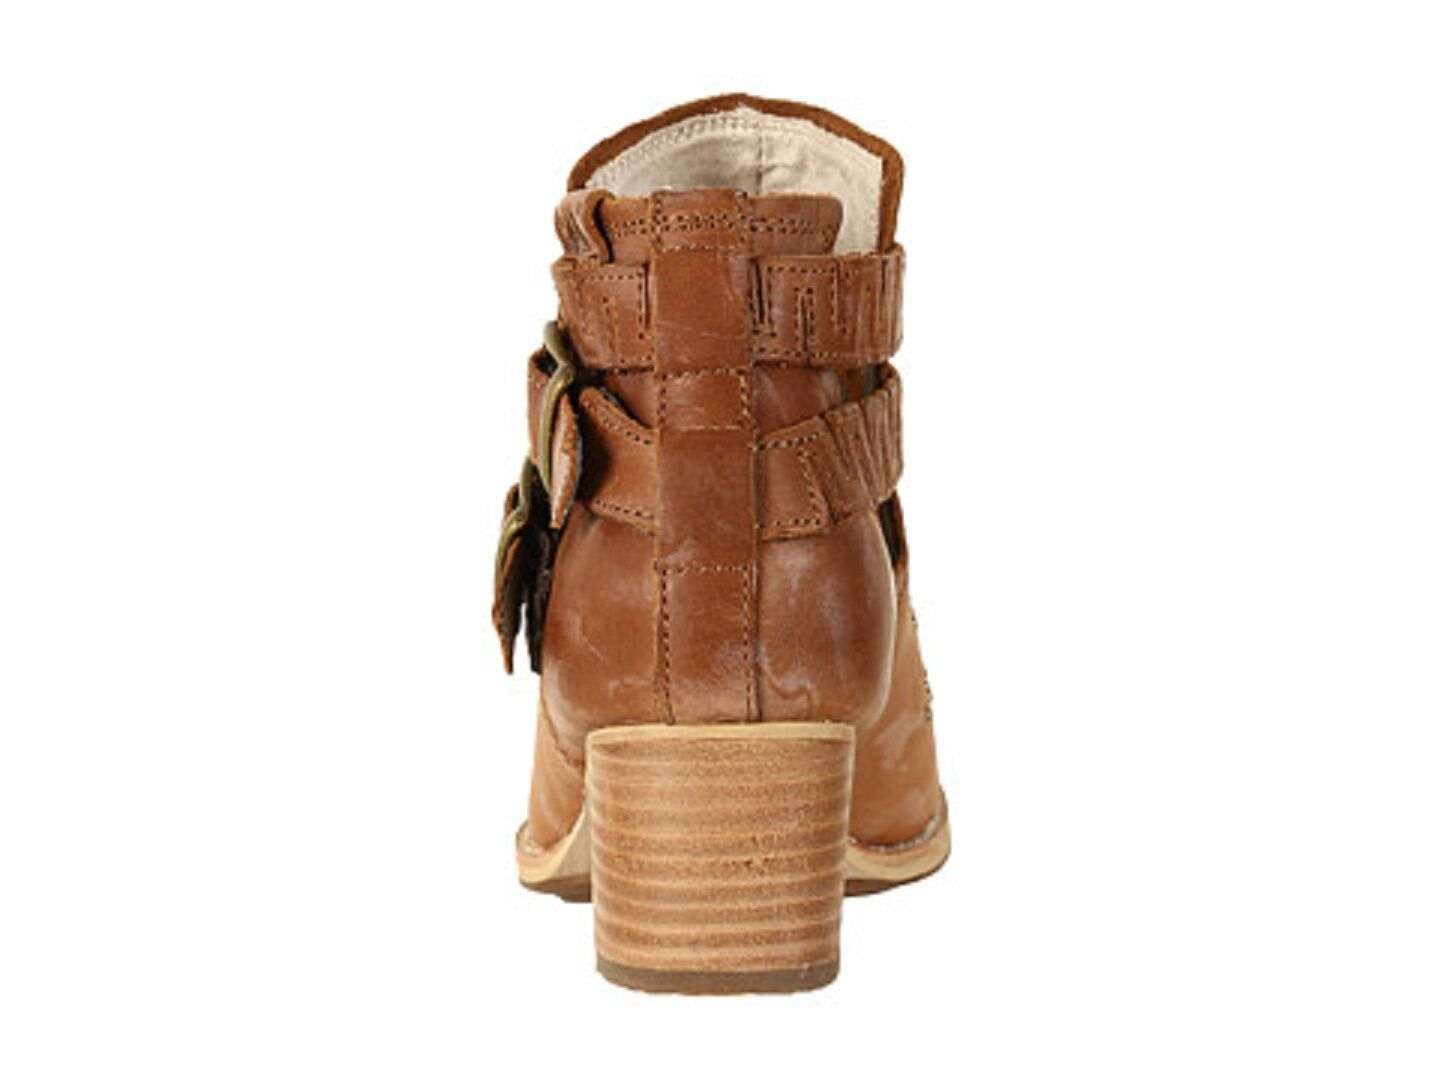 CATERPILLAR P309210 CHEYENNE Wmn's (M) Tawny Tawny Tawny Leather Ankle Pull-On Stiefel 8f5ea1